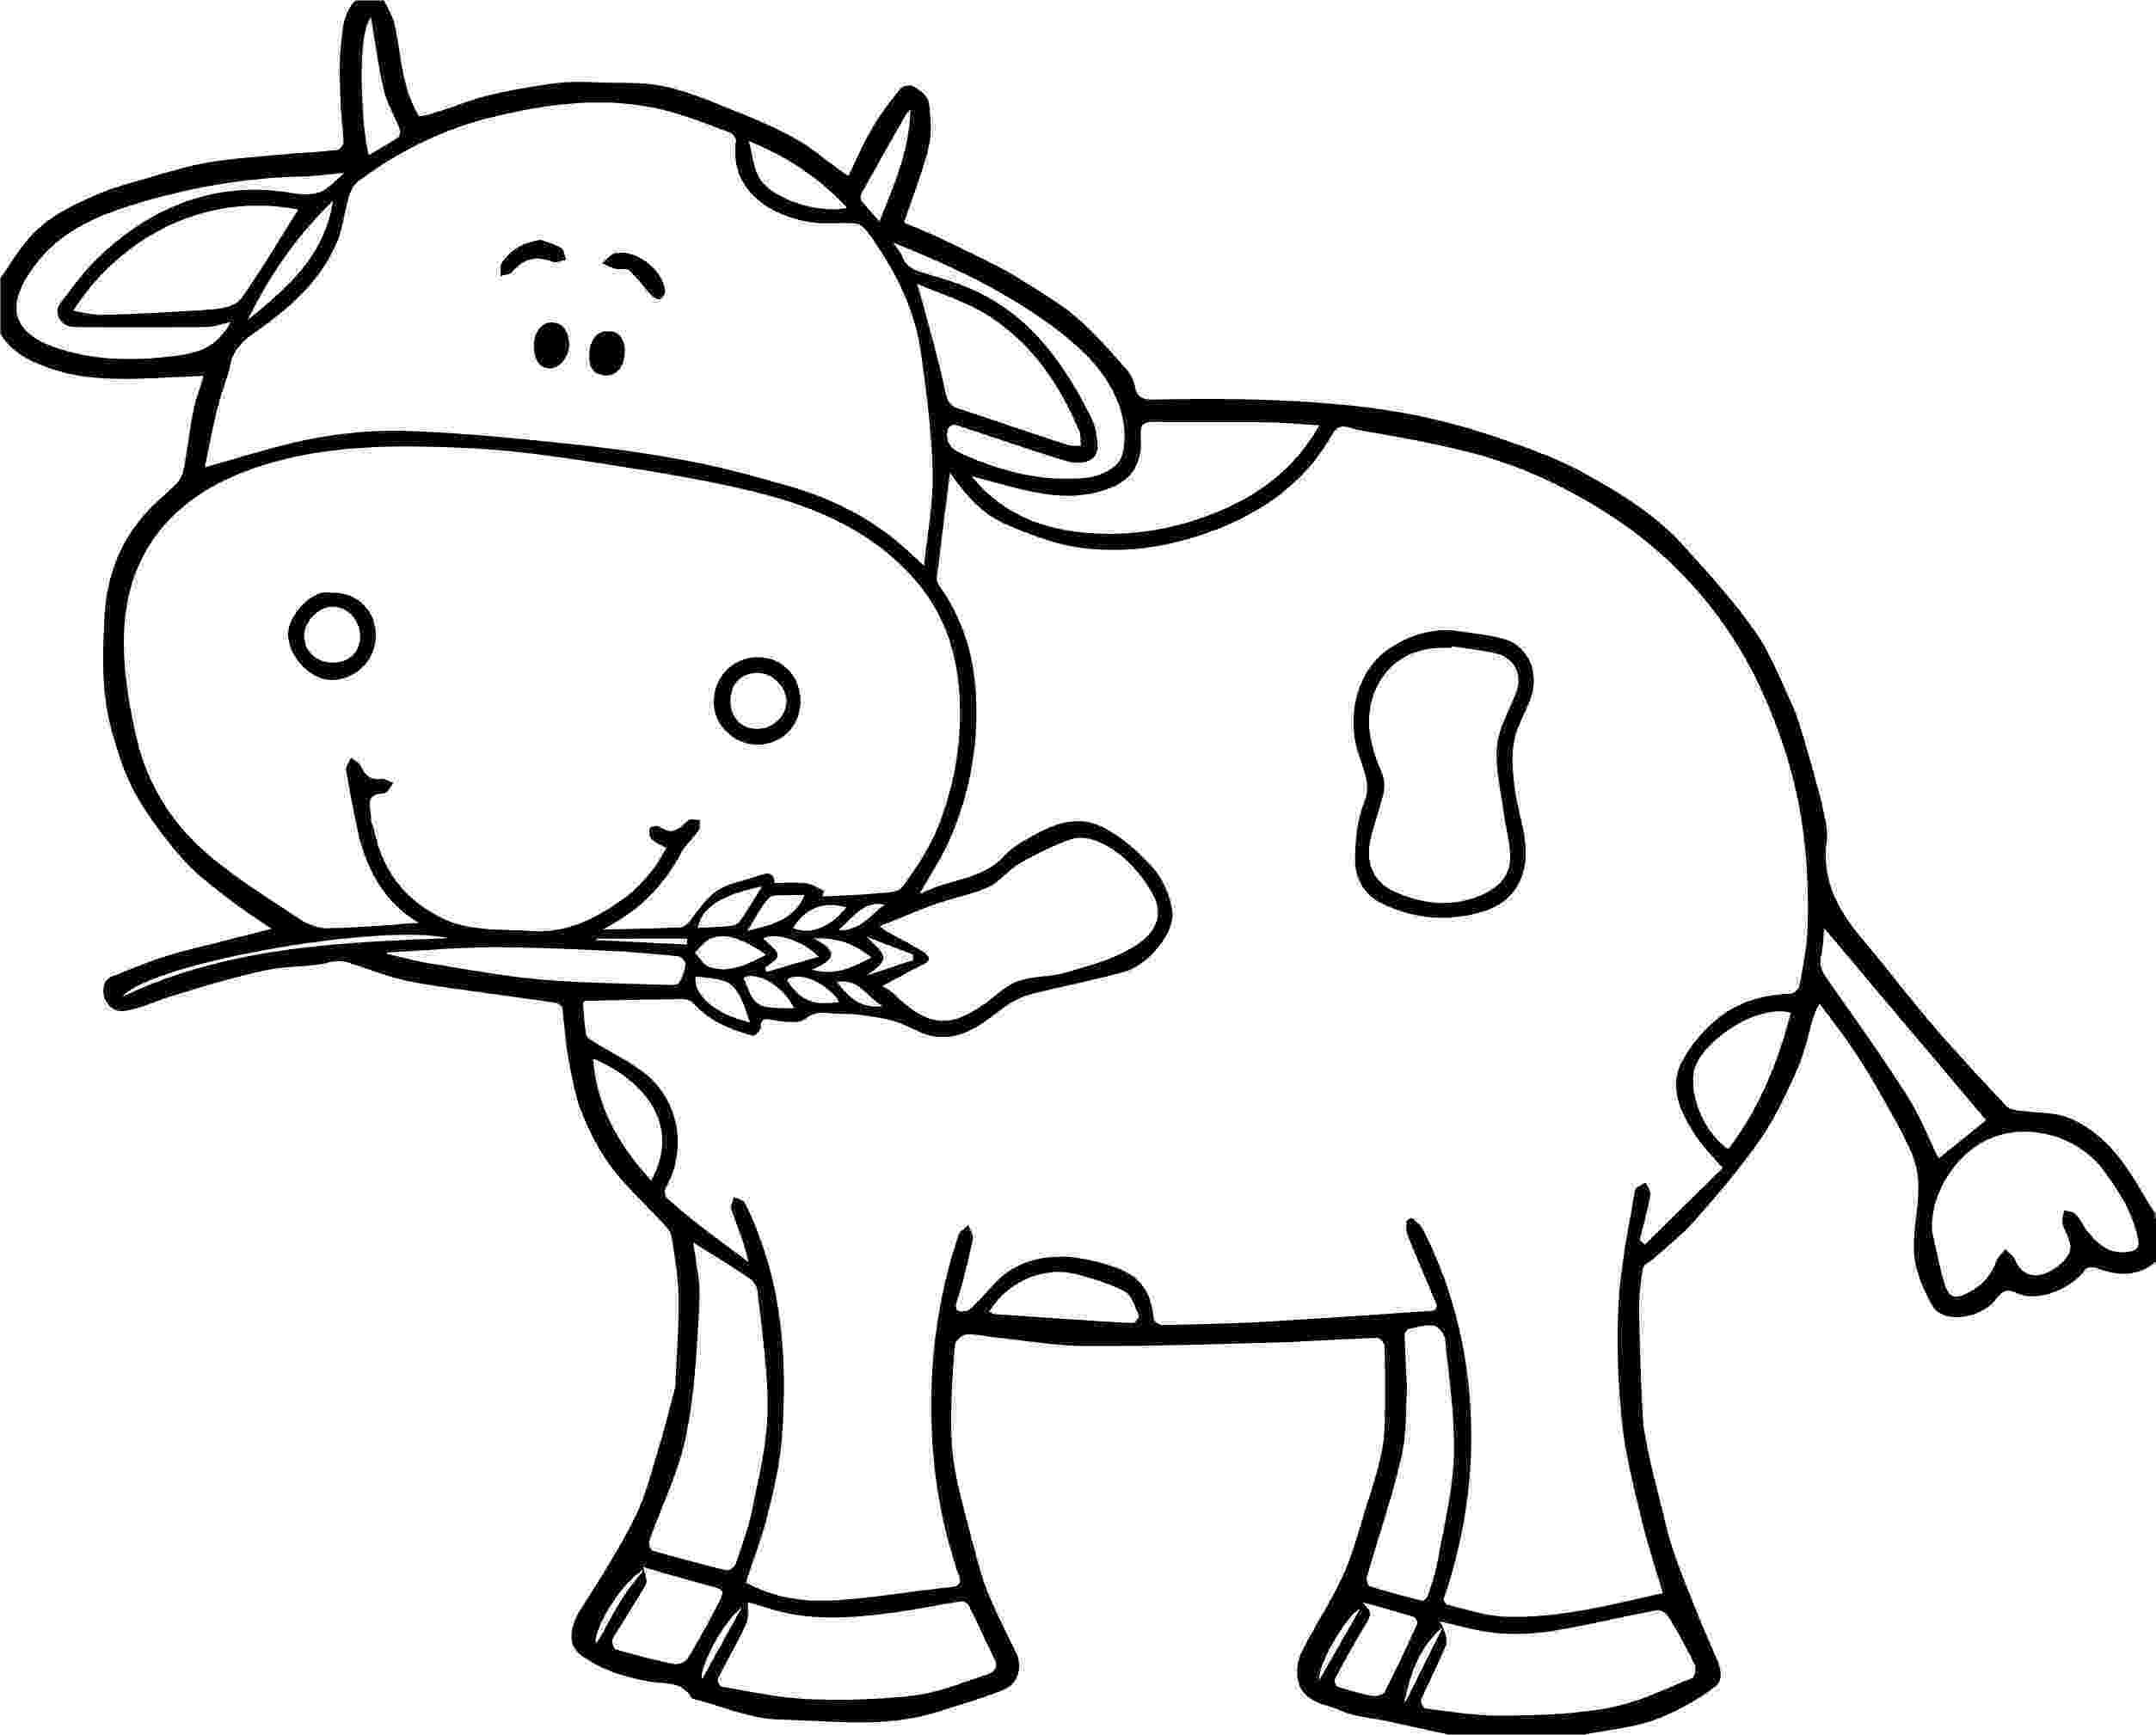 picture of cow for colouring cow to colour in colouring of cow picture for